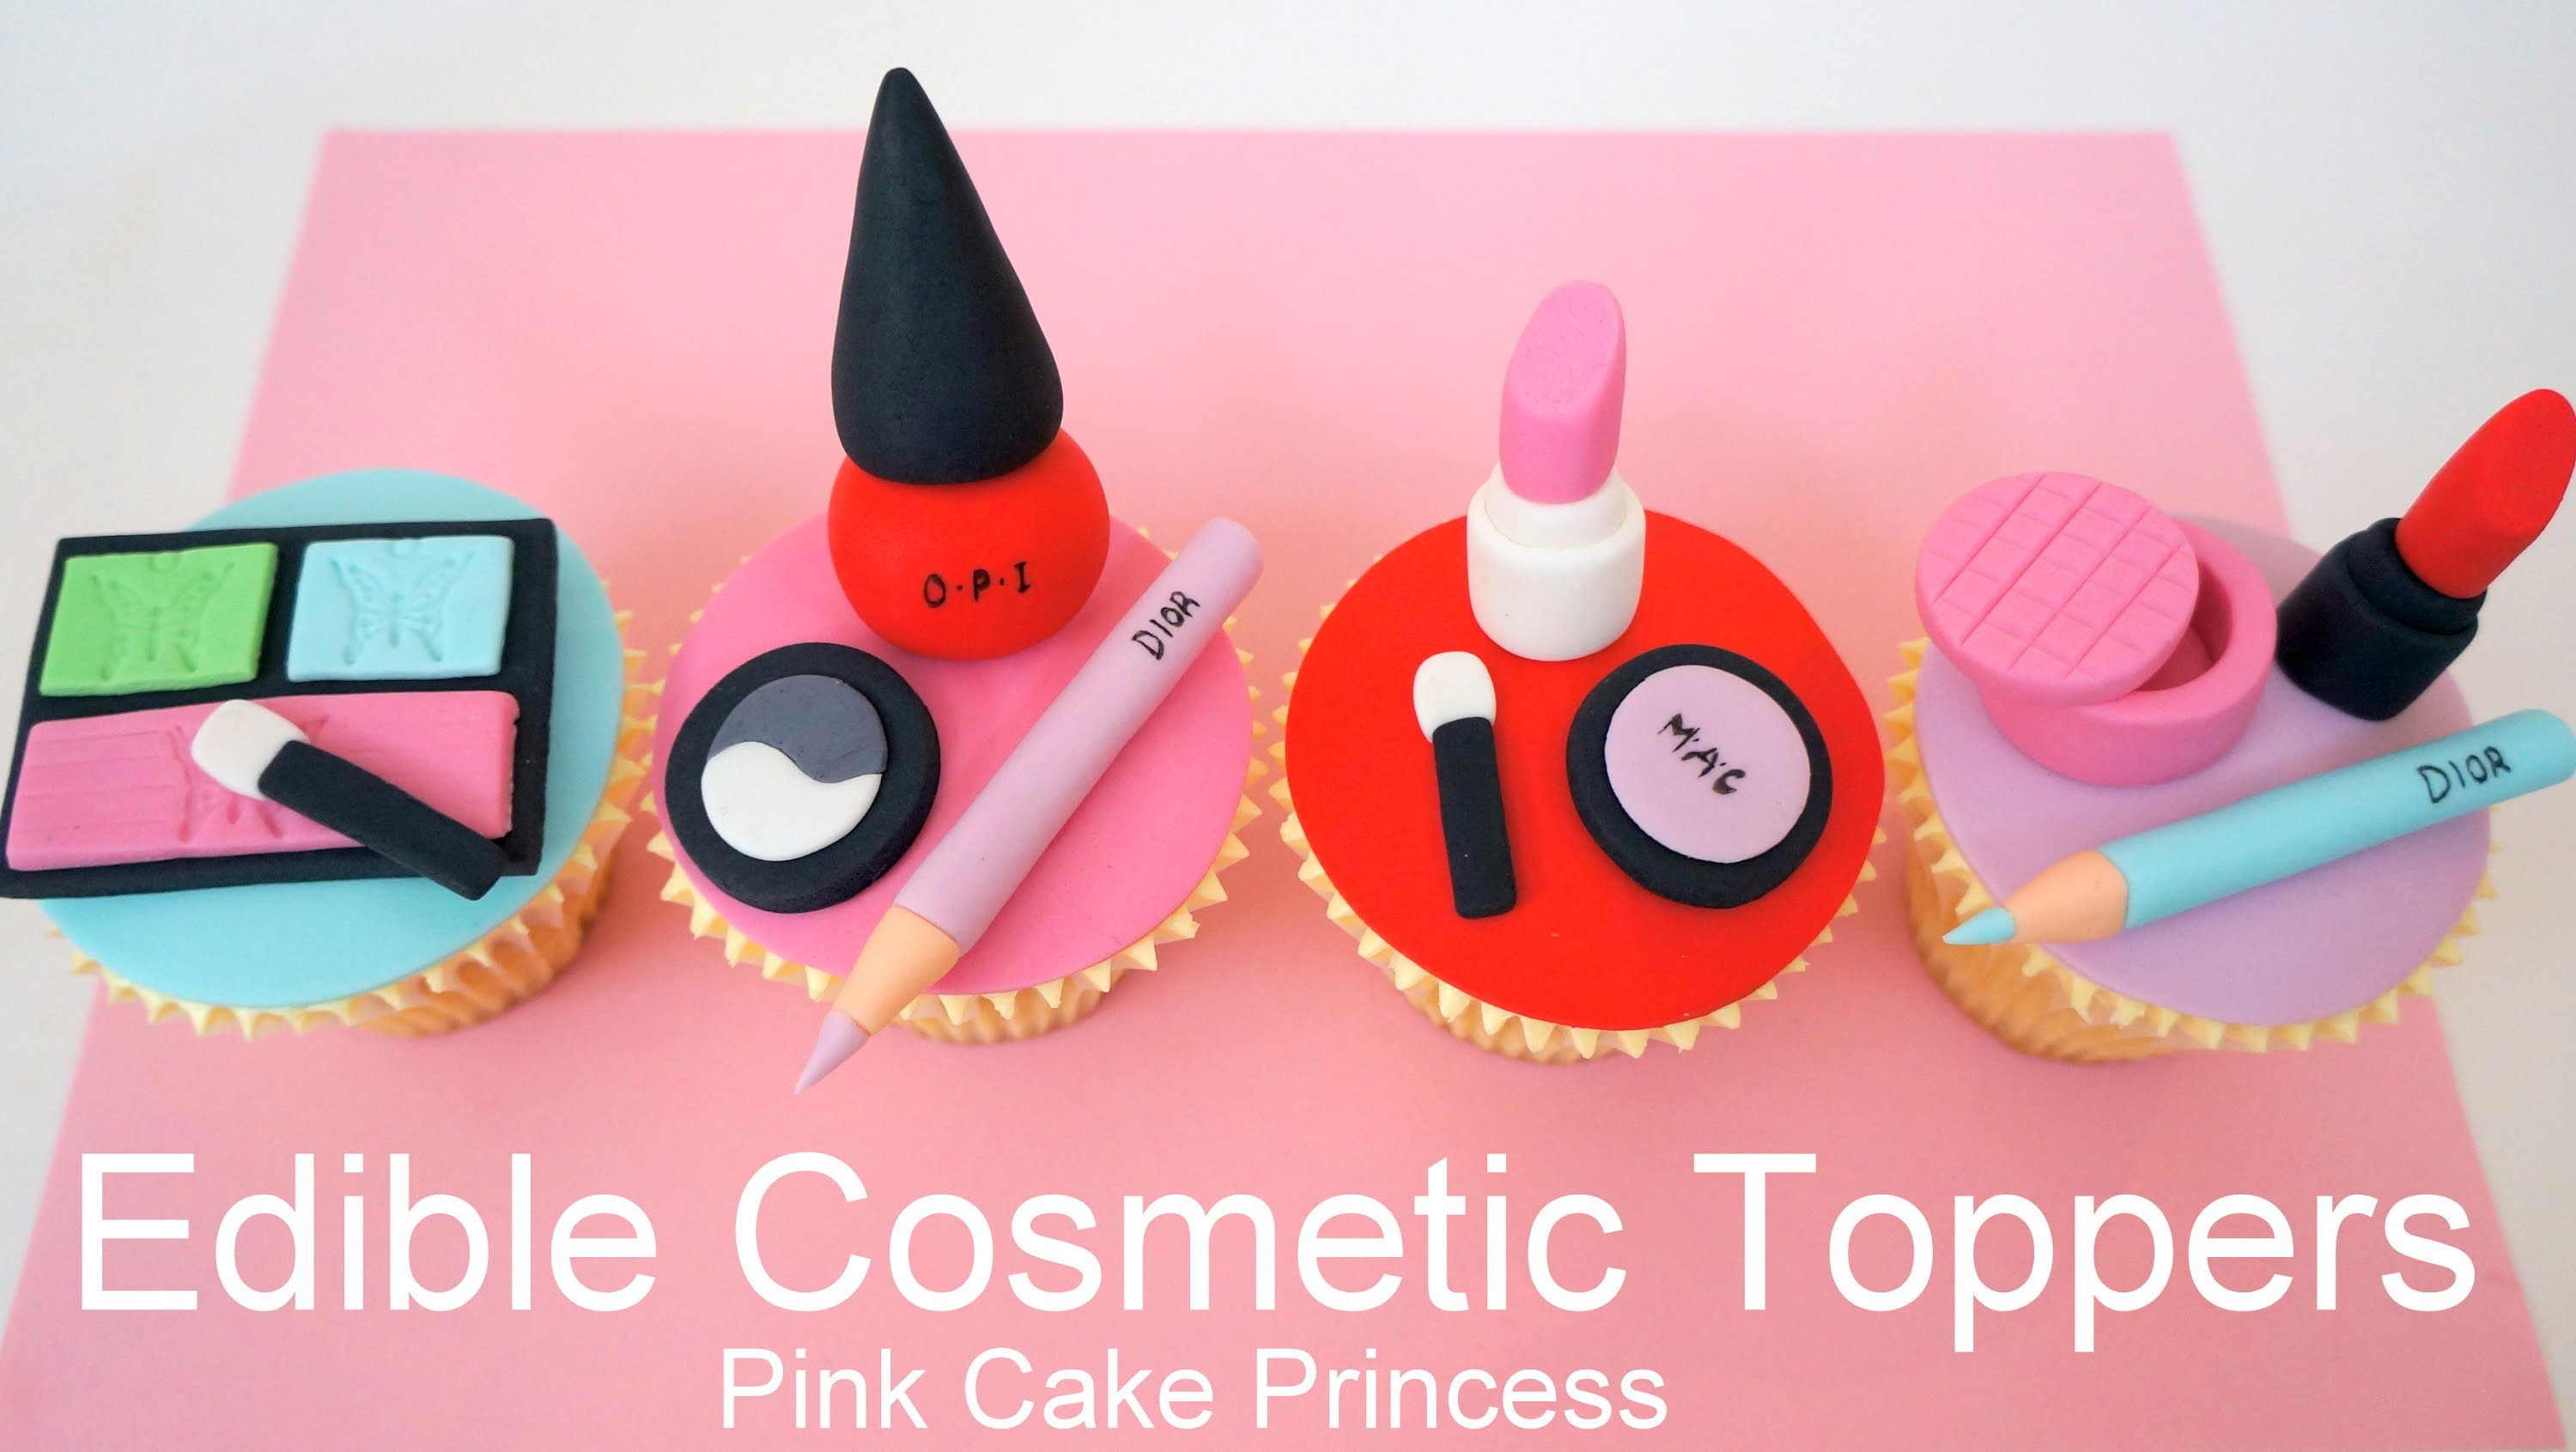 Edible Makeup Cake Toppers - How to Make Cosmetics Cake Toppers by Pink Cake Princess